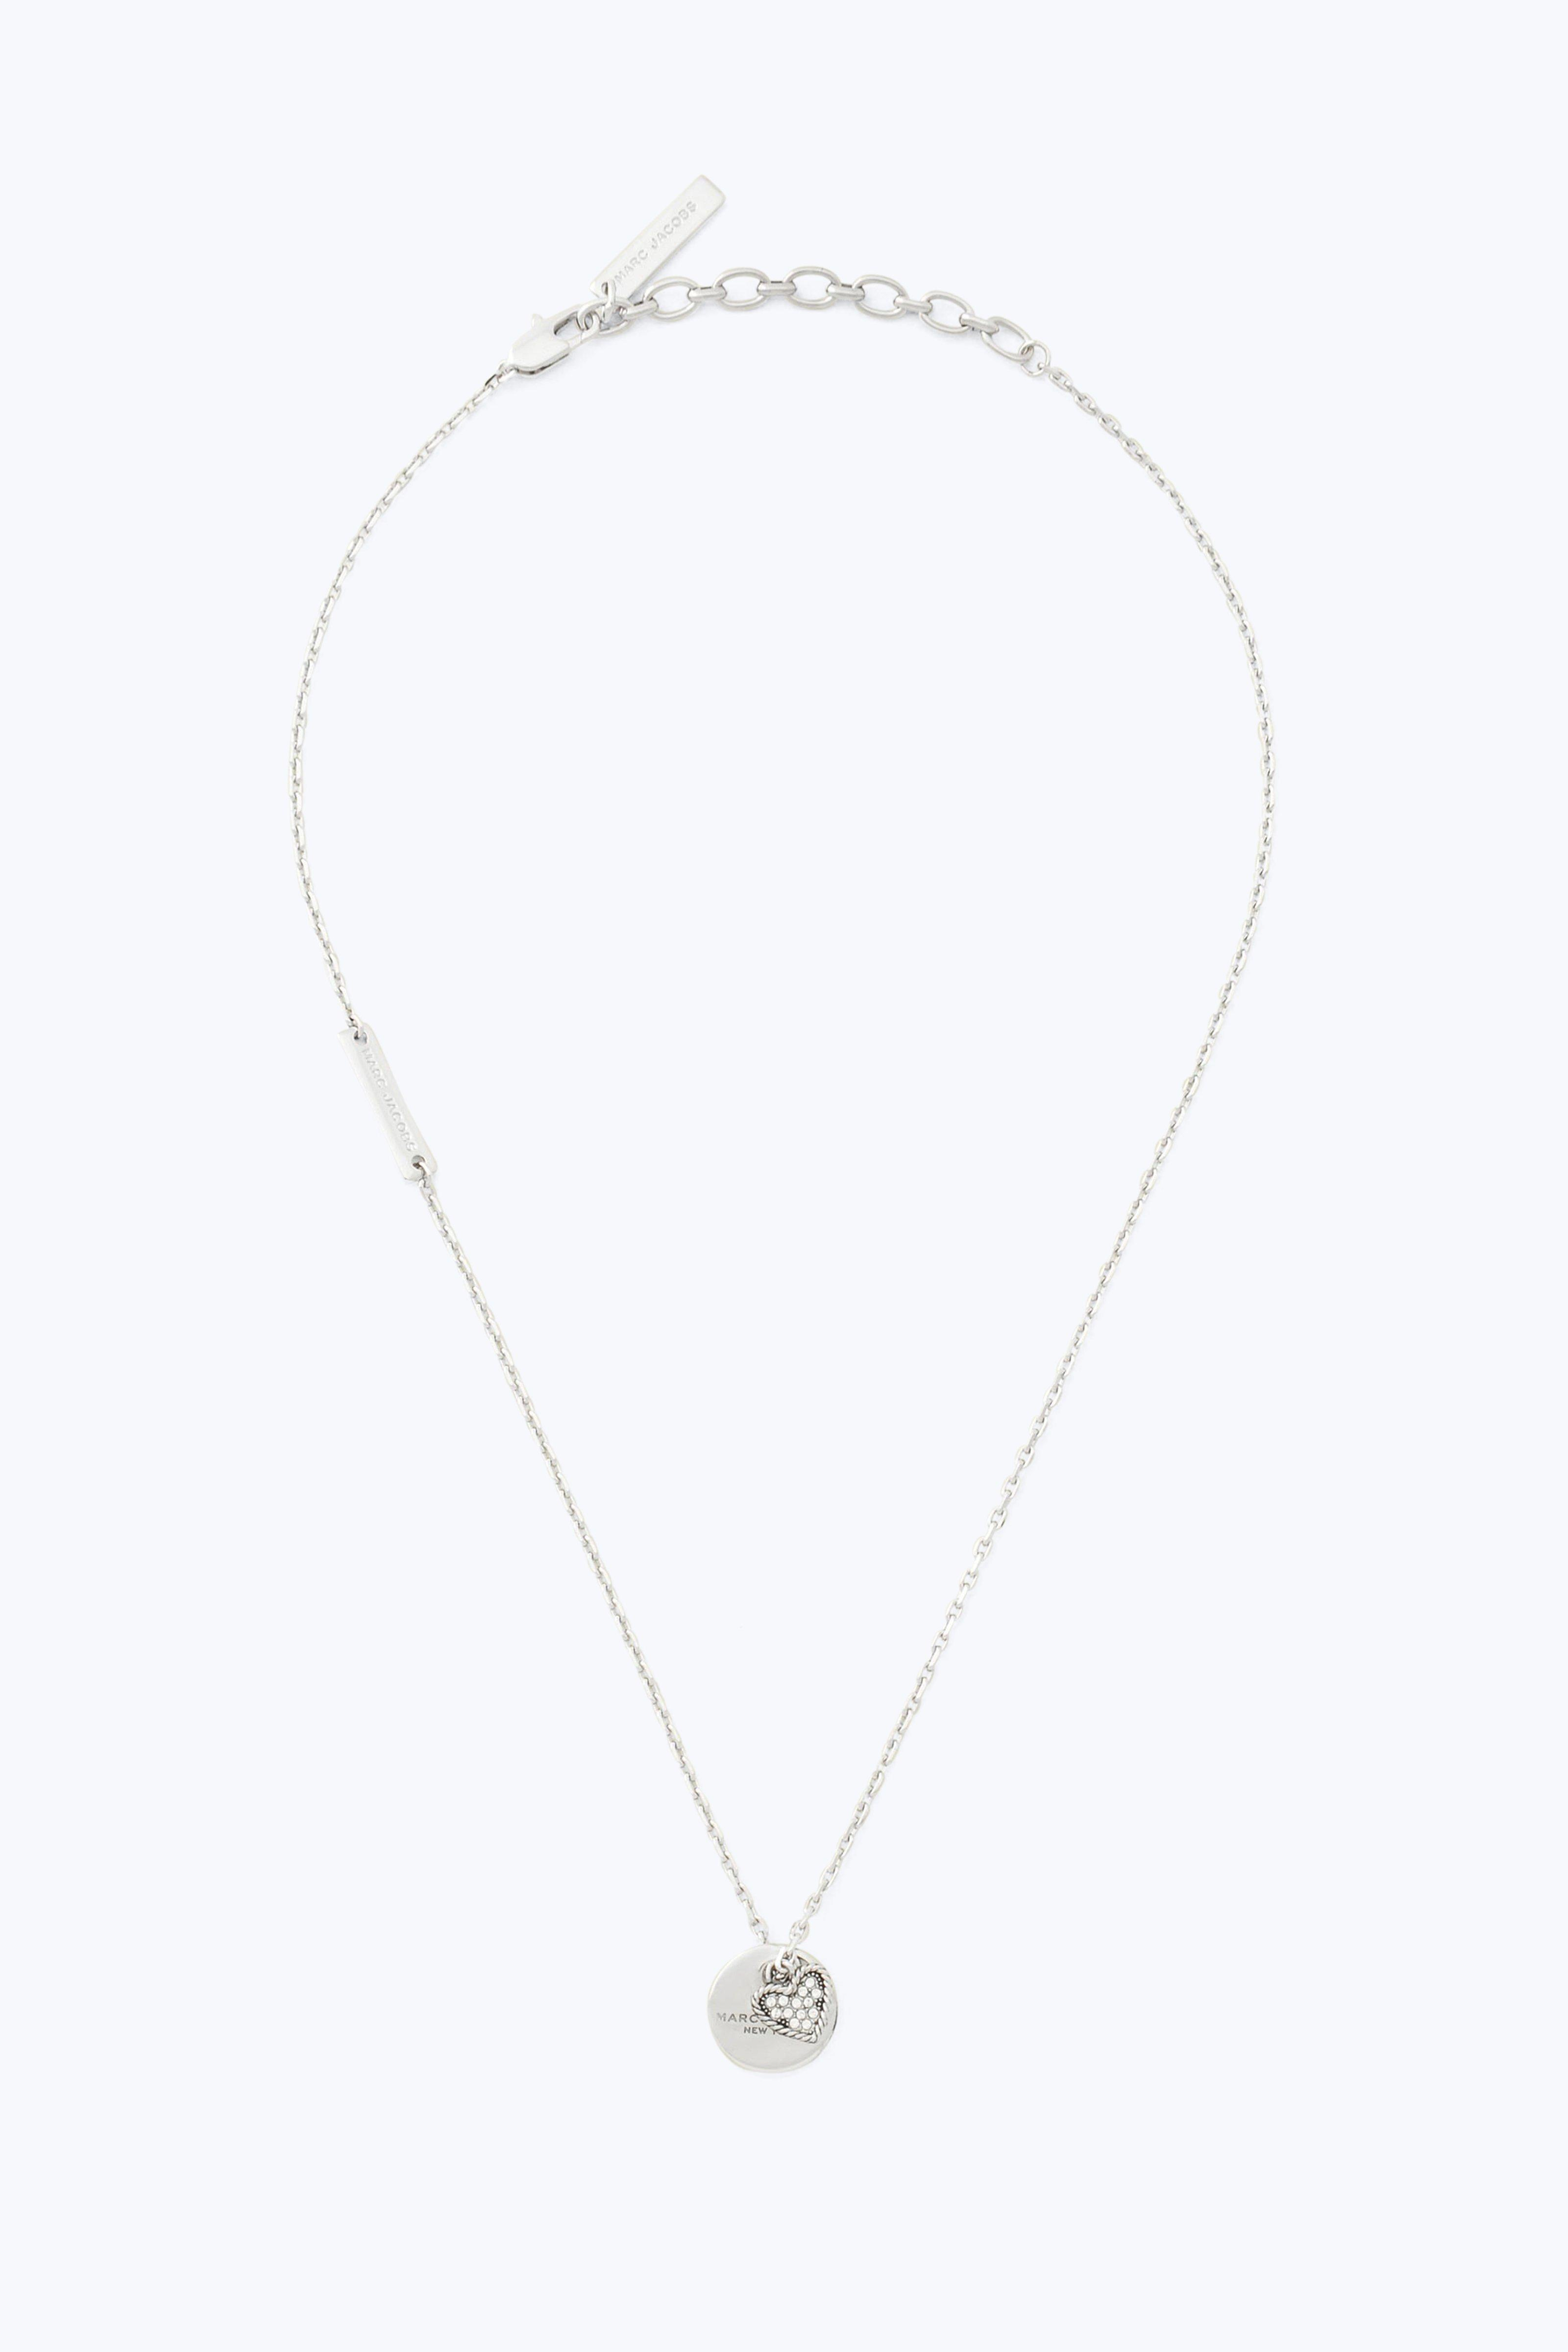 Marc Jacobs Mj Coin Crystal Pendant In Crystal/Silver